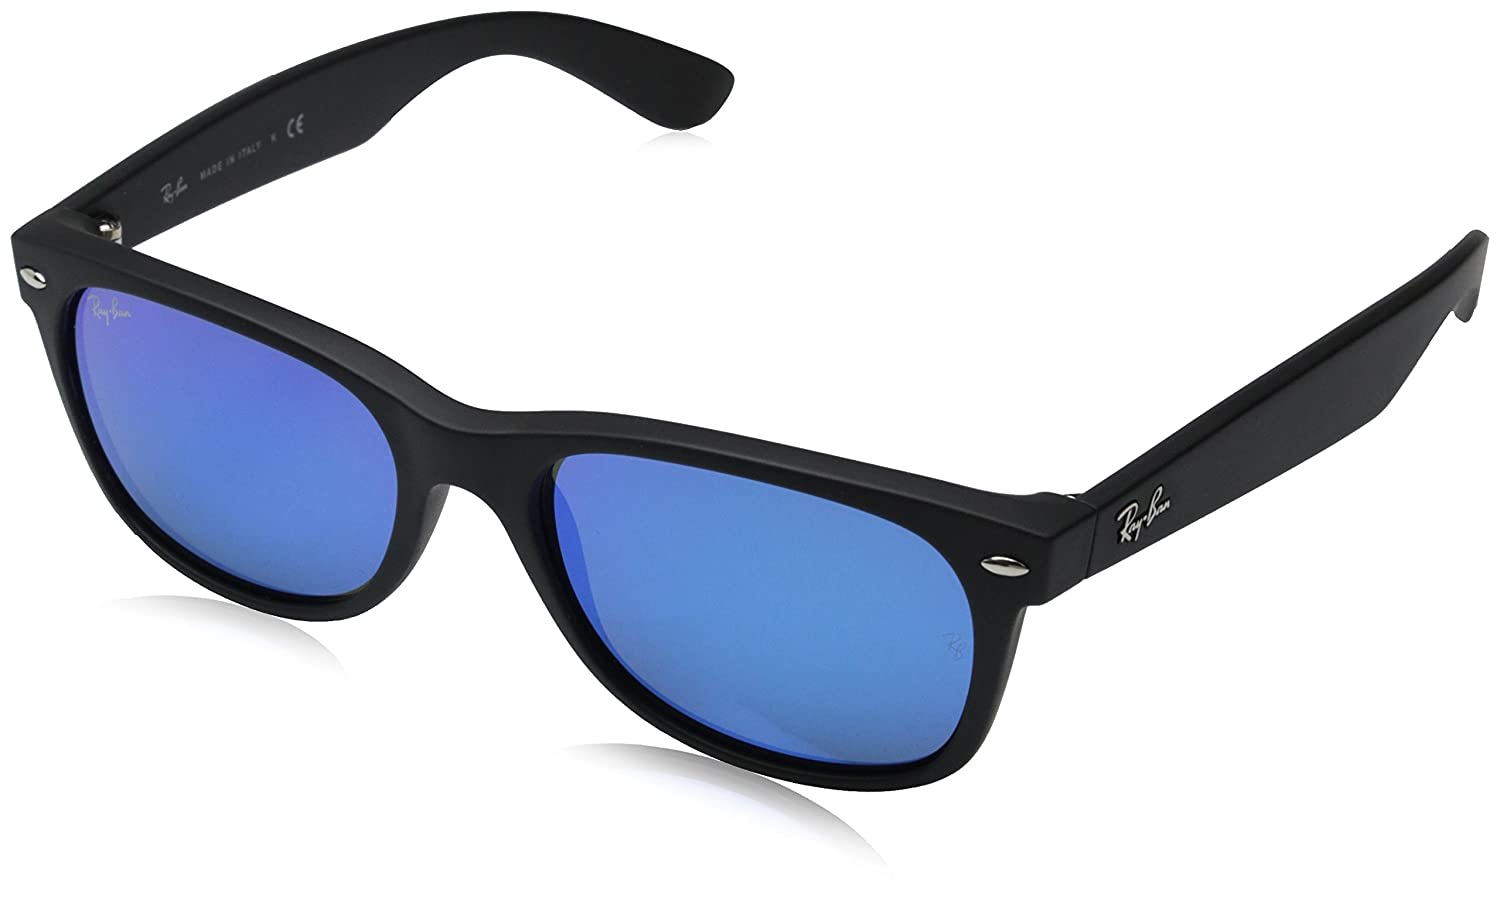 Ray-Ban RB2132 New Wayfarer Sunglasses Matte Black w/Blue Mirror (622/17) RB 2132 55mm Authentic: Amazon.co.uk: Shoes \u0026amp; Bags